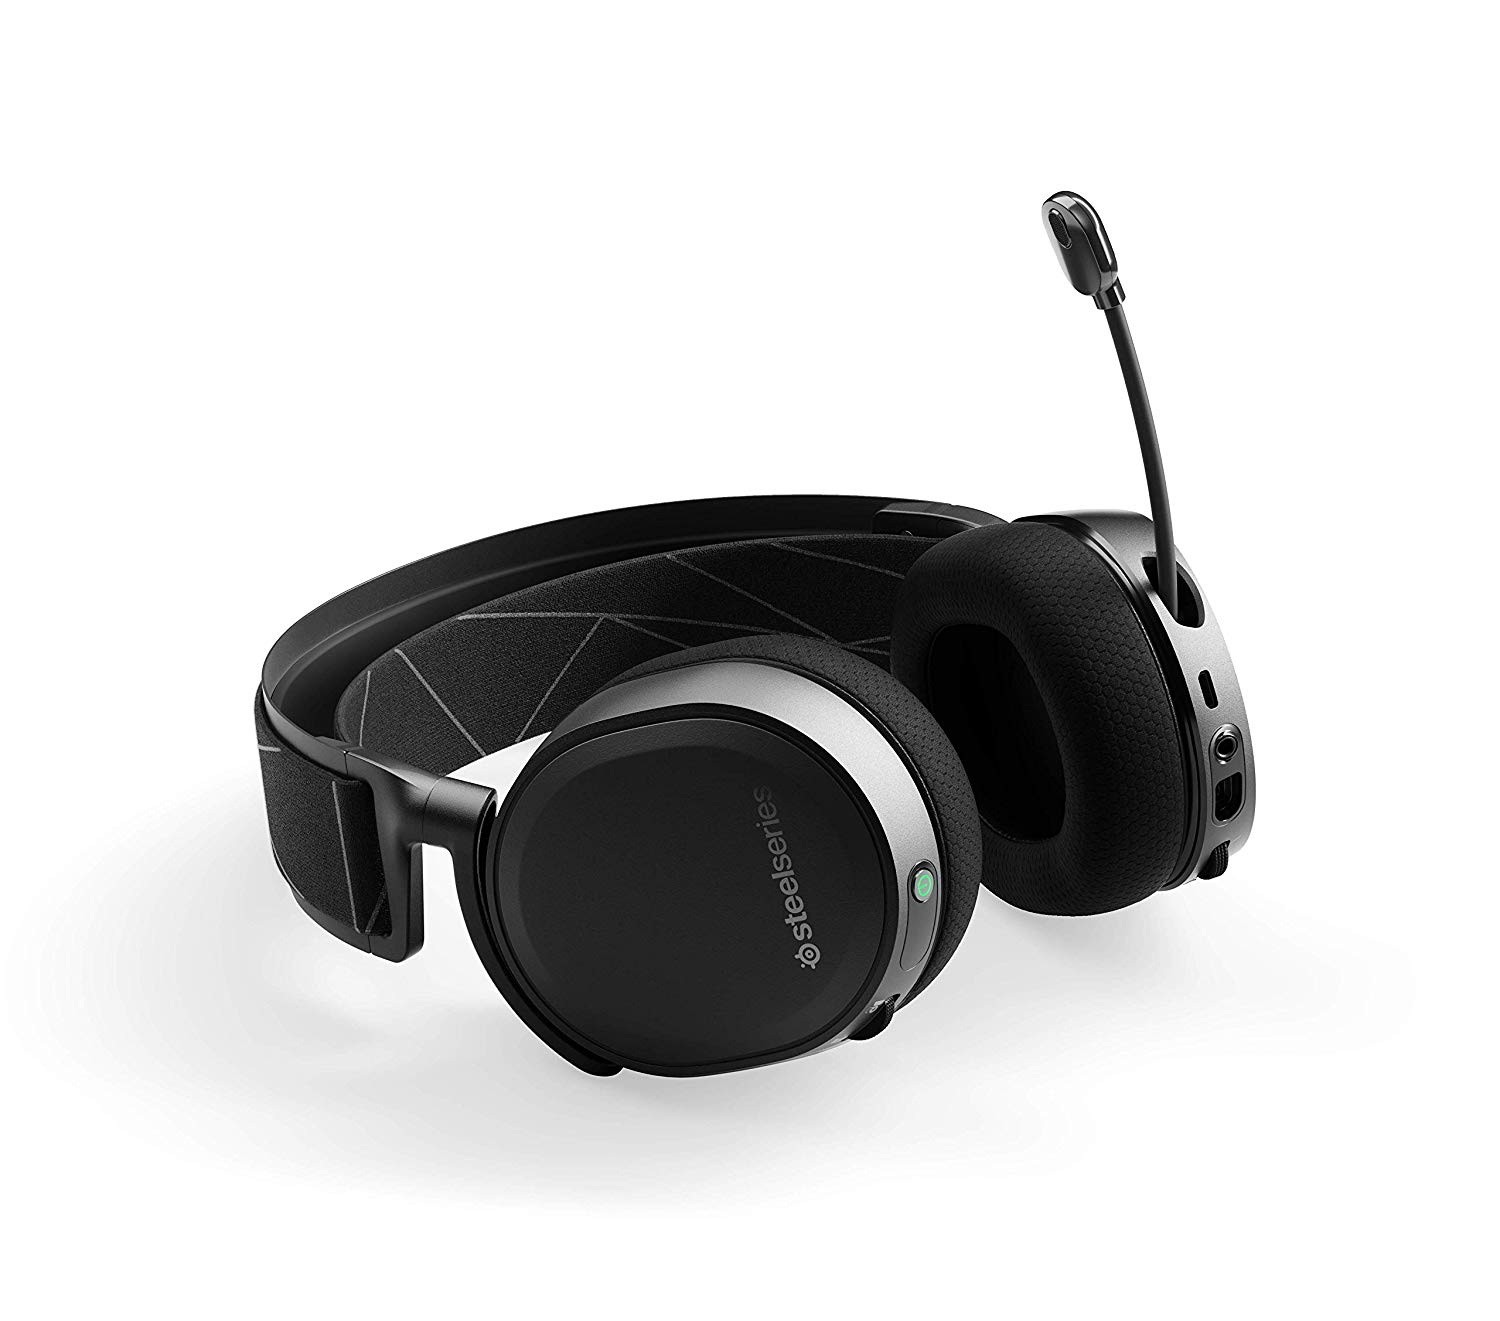 gaming headset SteelSeries Arctic 7 mic view